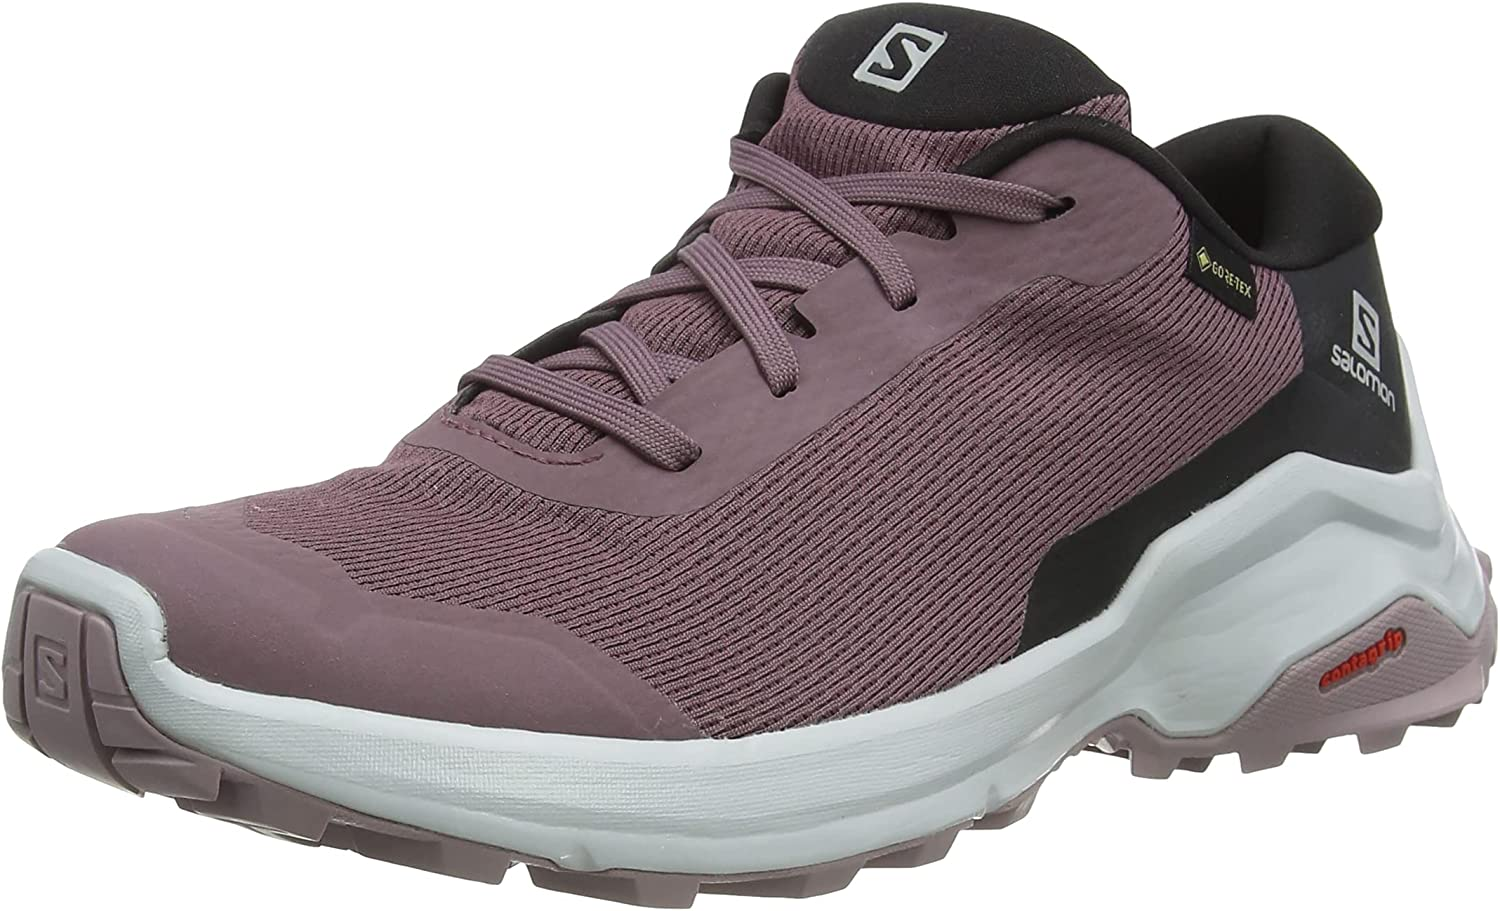 Challenge the lowest price Salomon Women's X Reveal Boots GTX Backpacking W Genuine